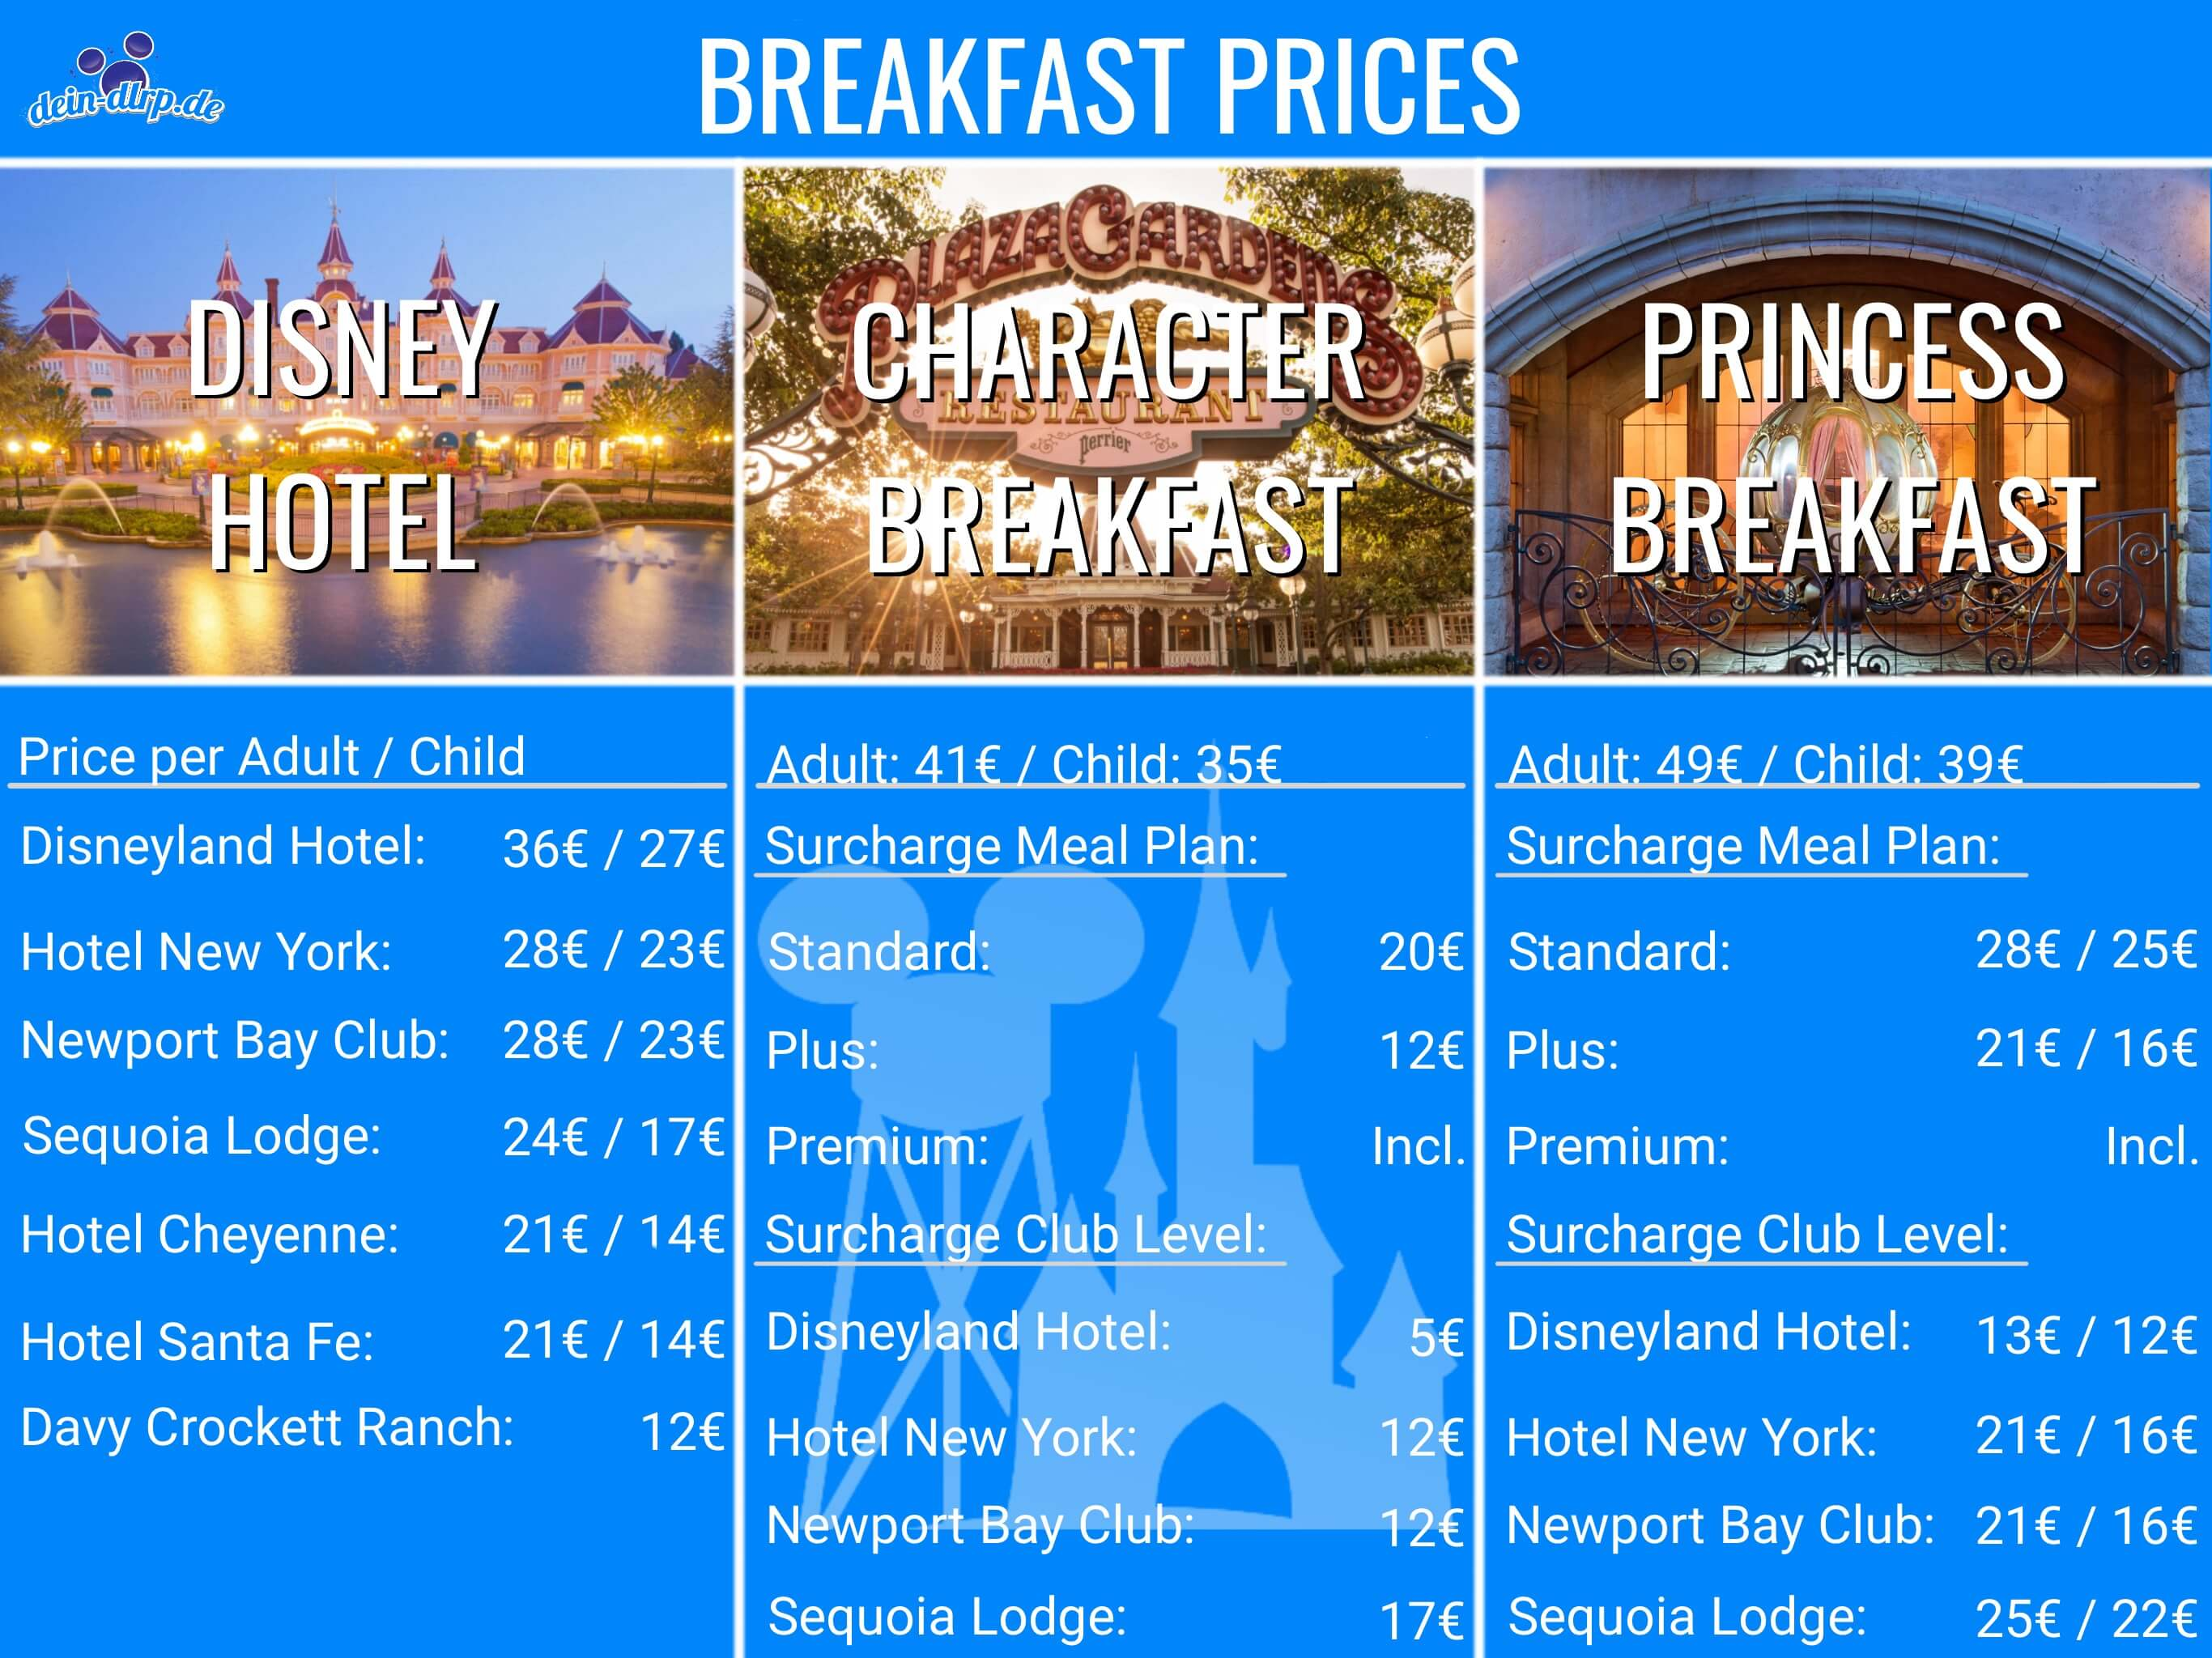 Overview of all prices & surcharges for breakfast at Disneyland Paris